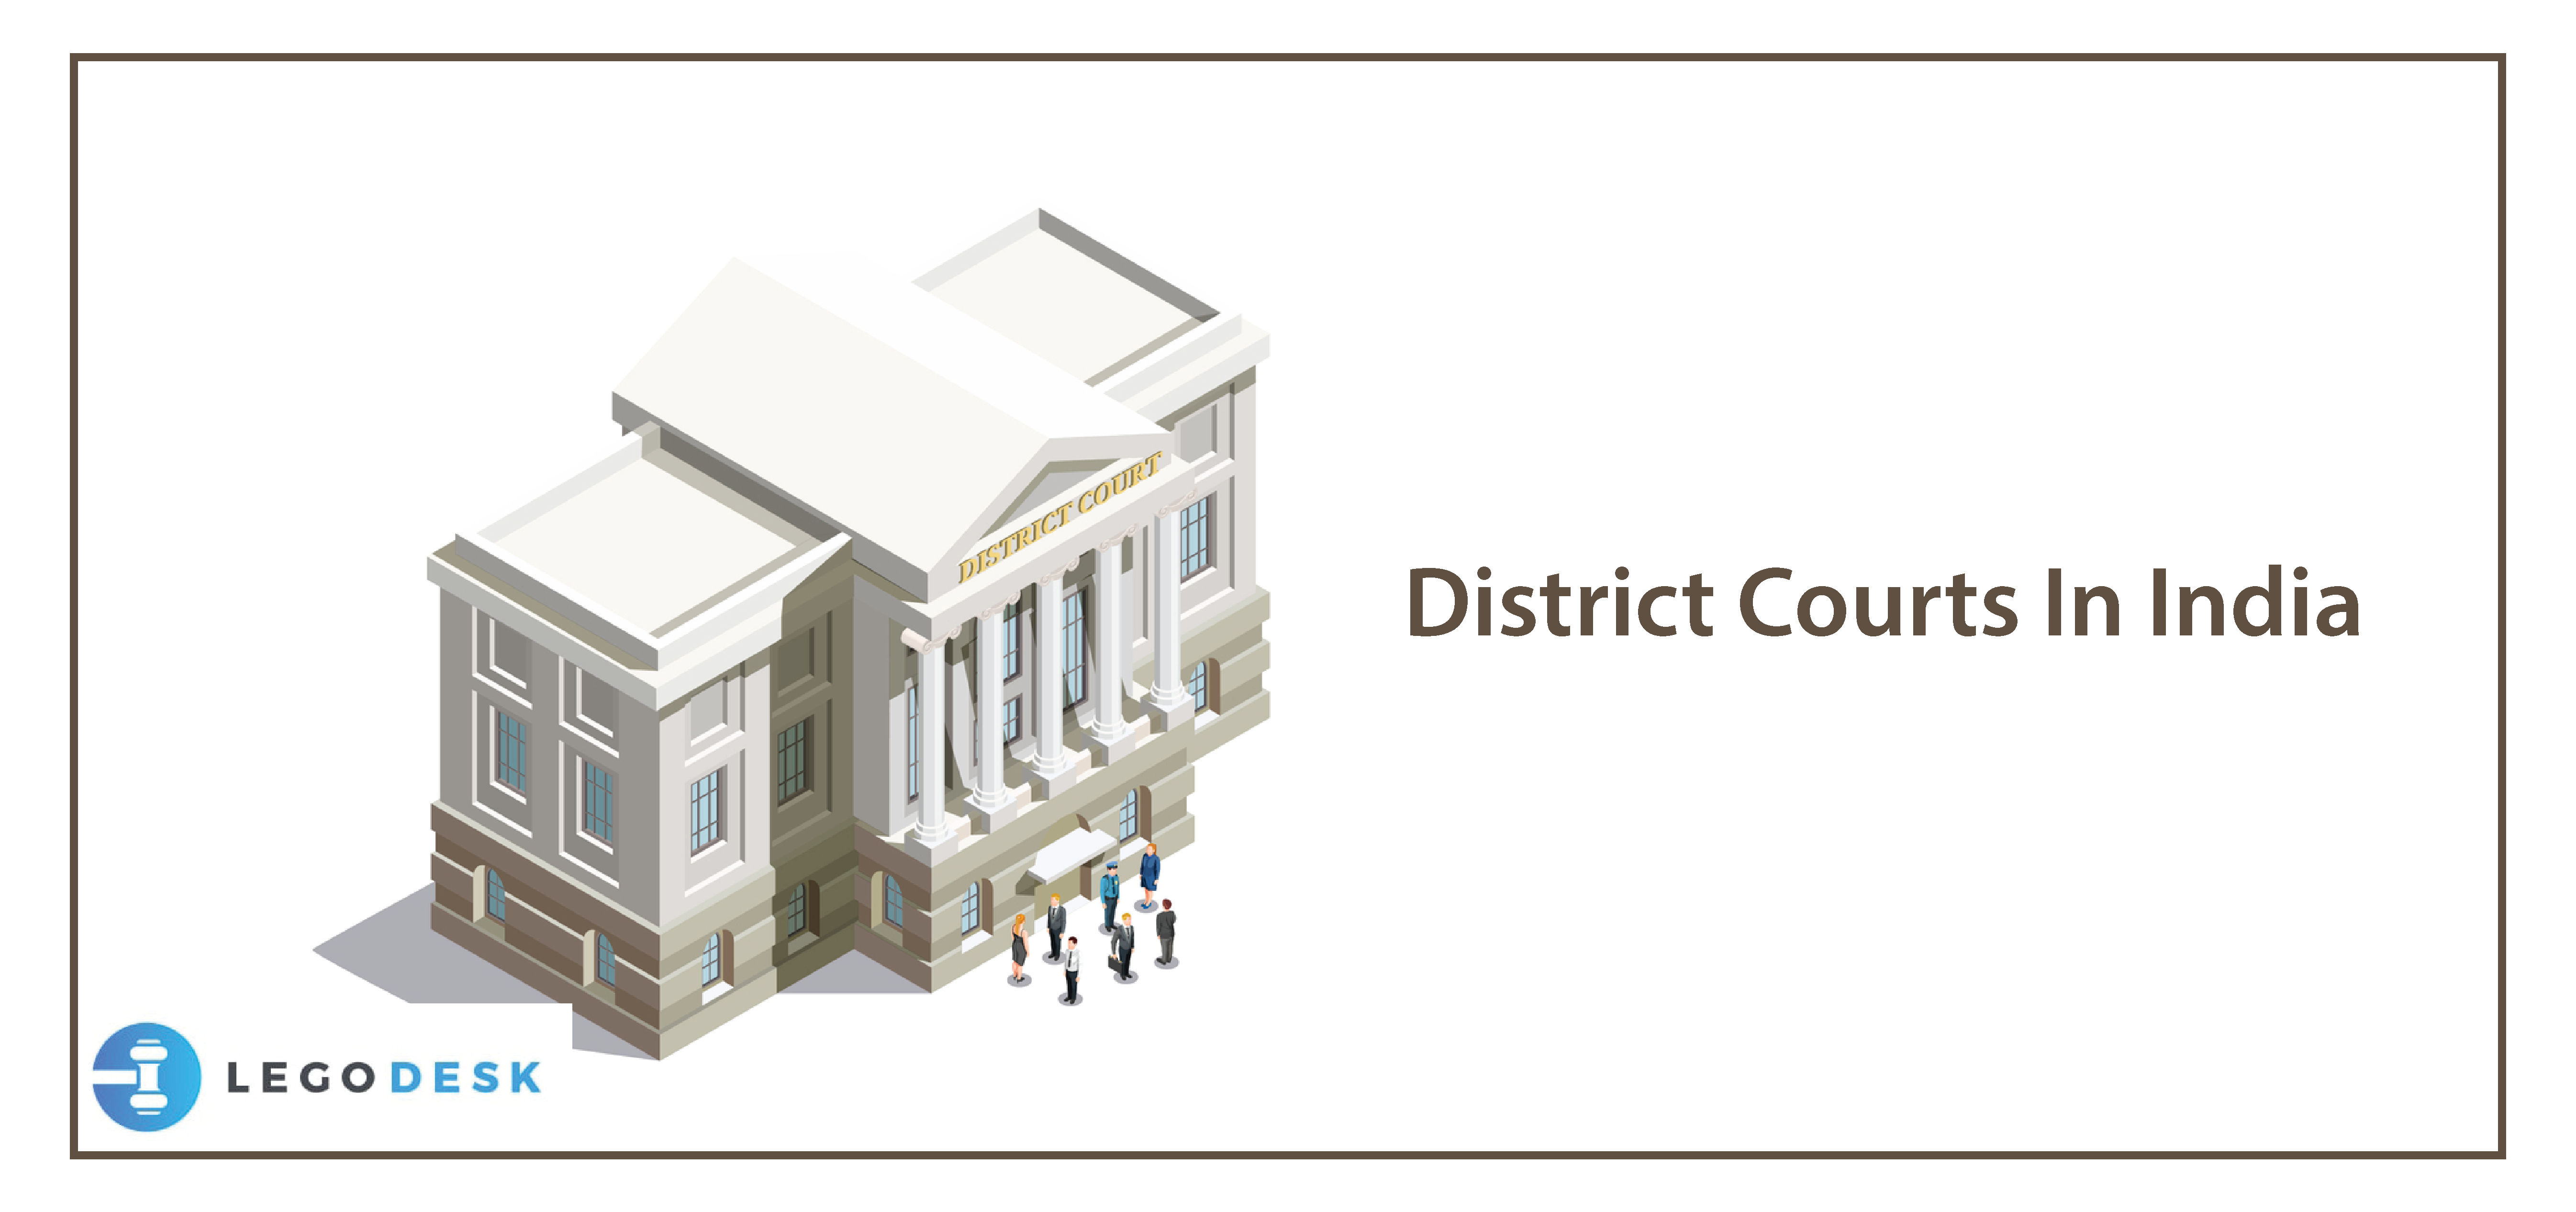 District Courts In India